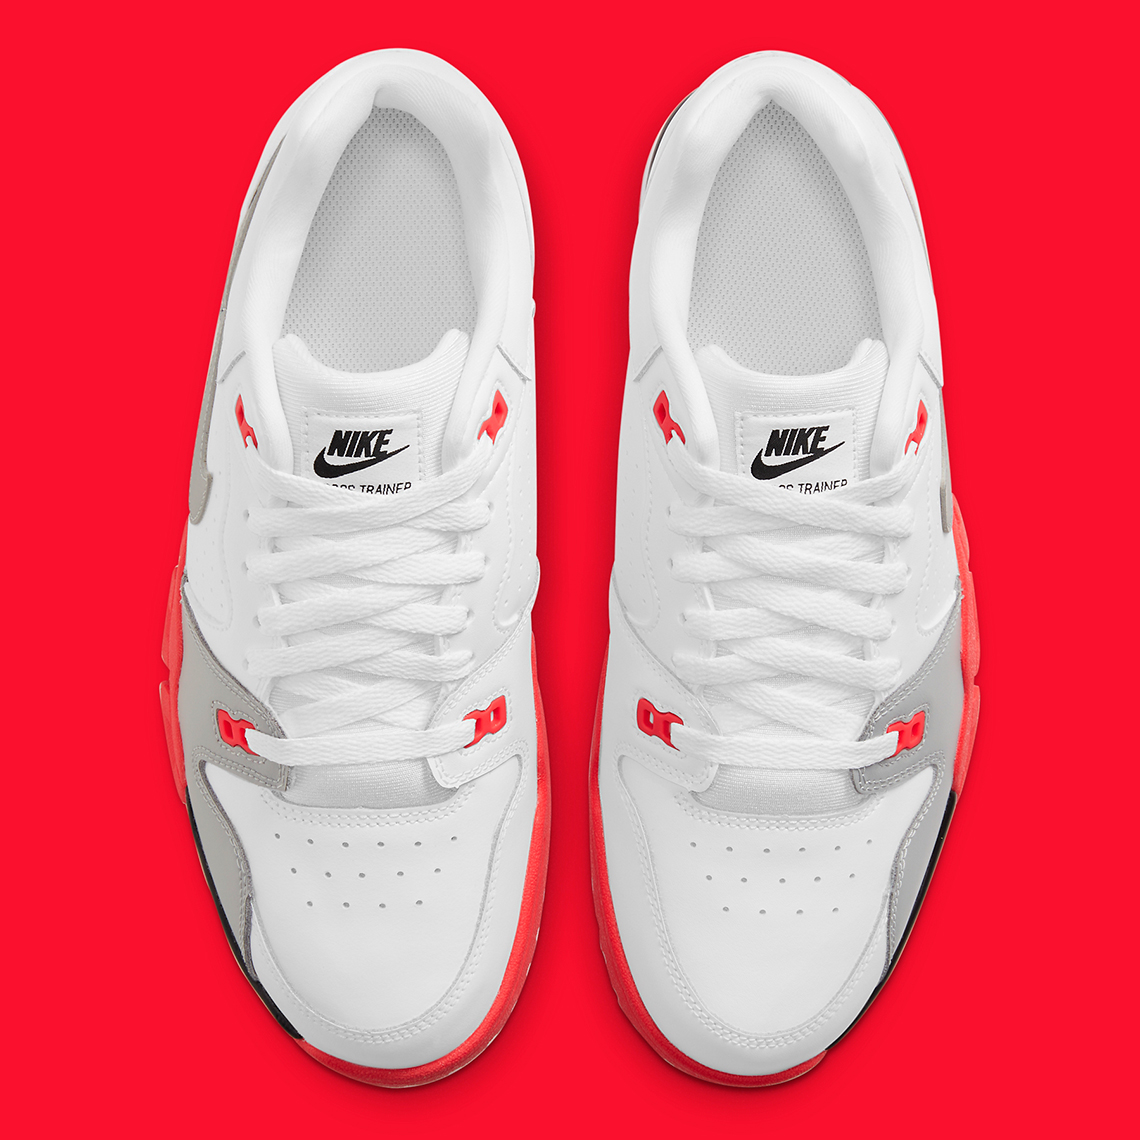 Nike-Air-Cross-Trainer-Low-Infrared-CQ9182-105-3.jpg?w=1140